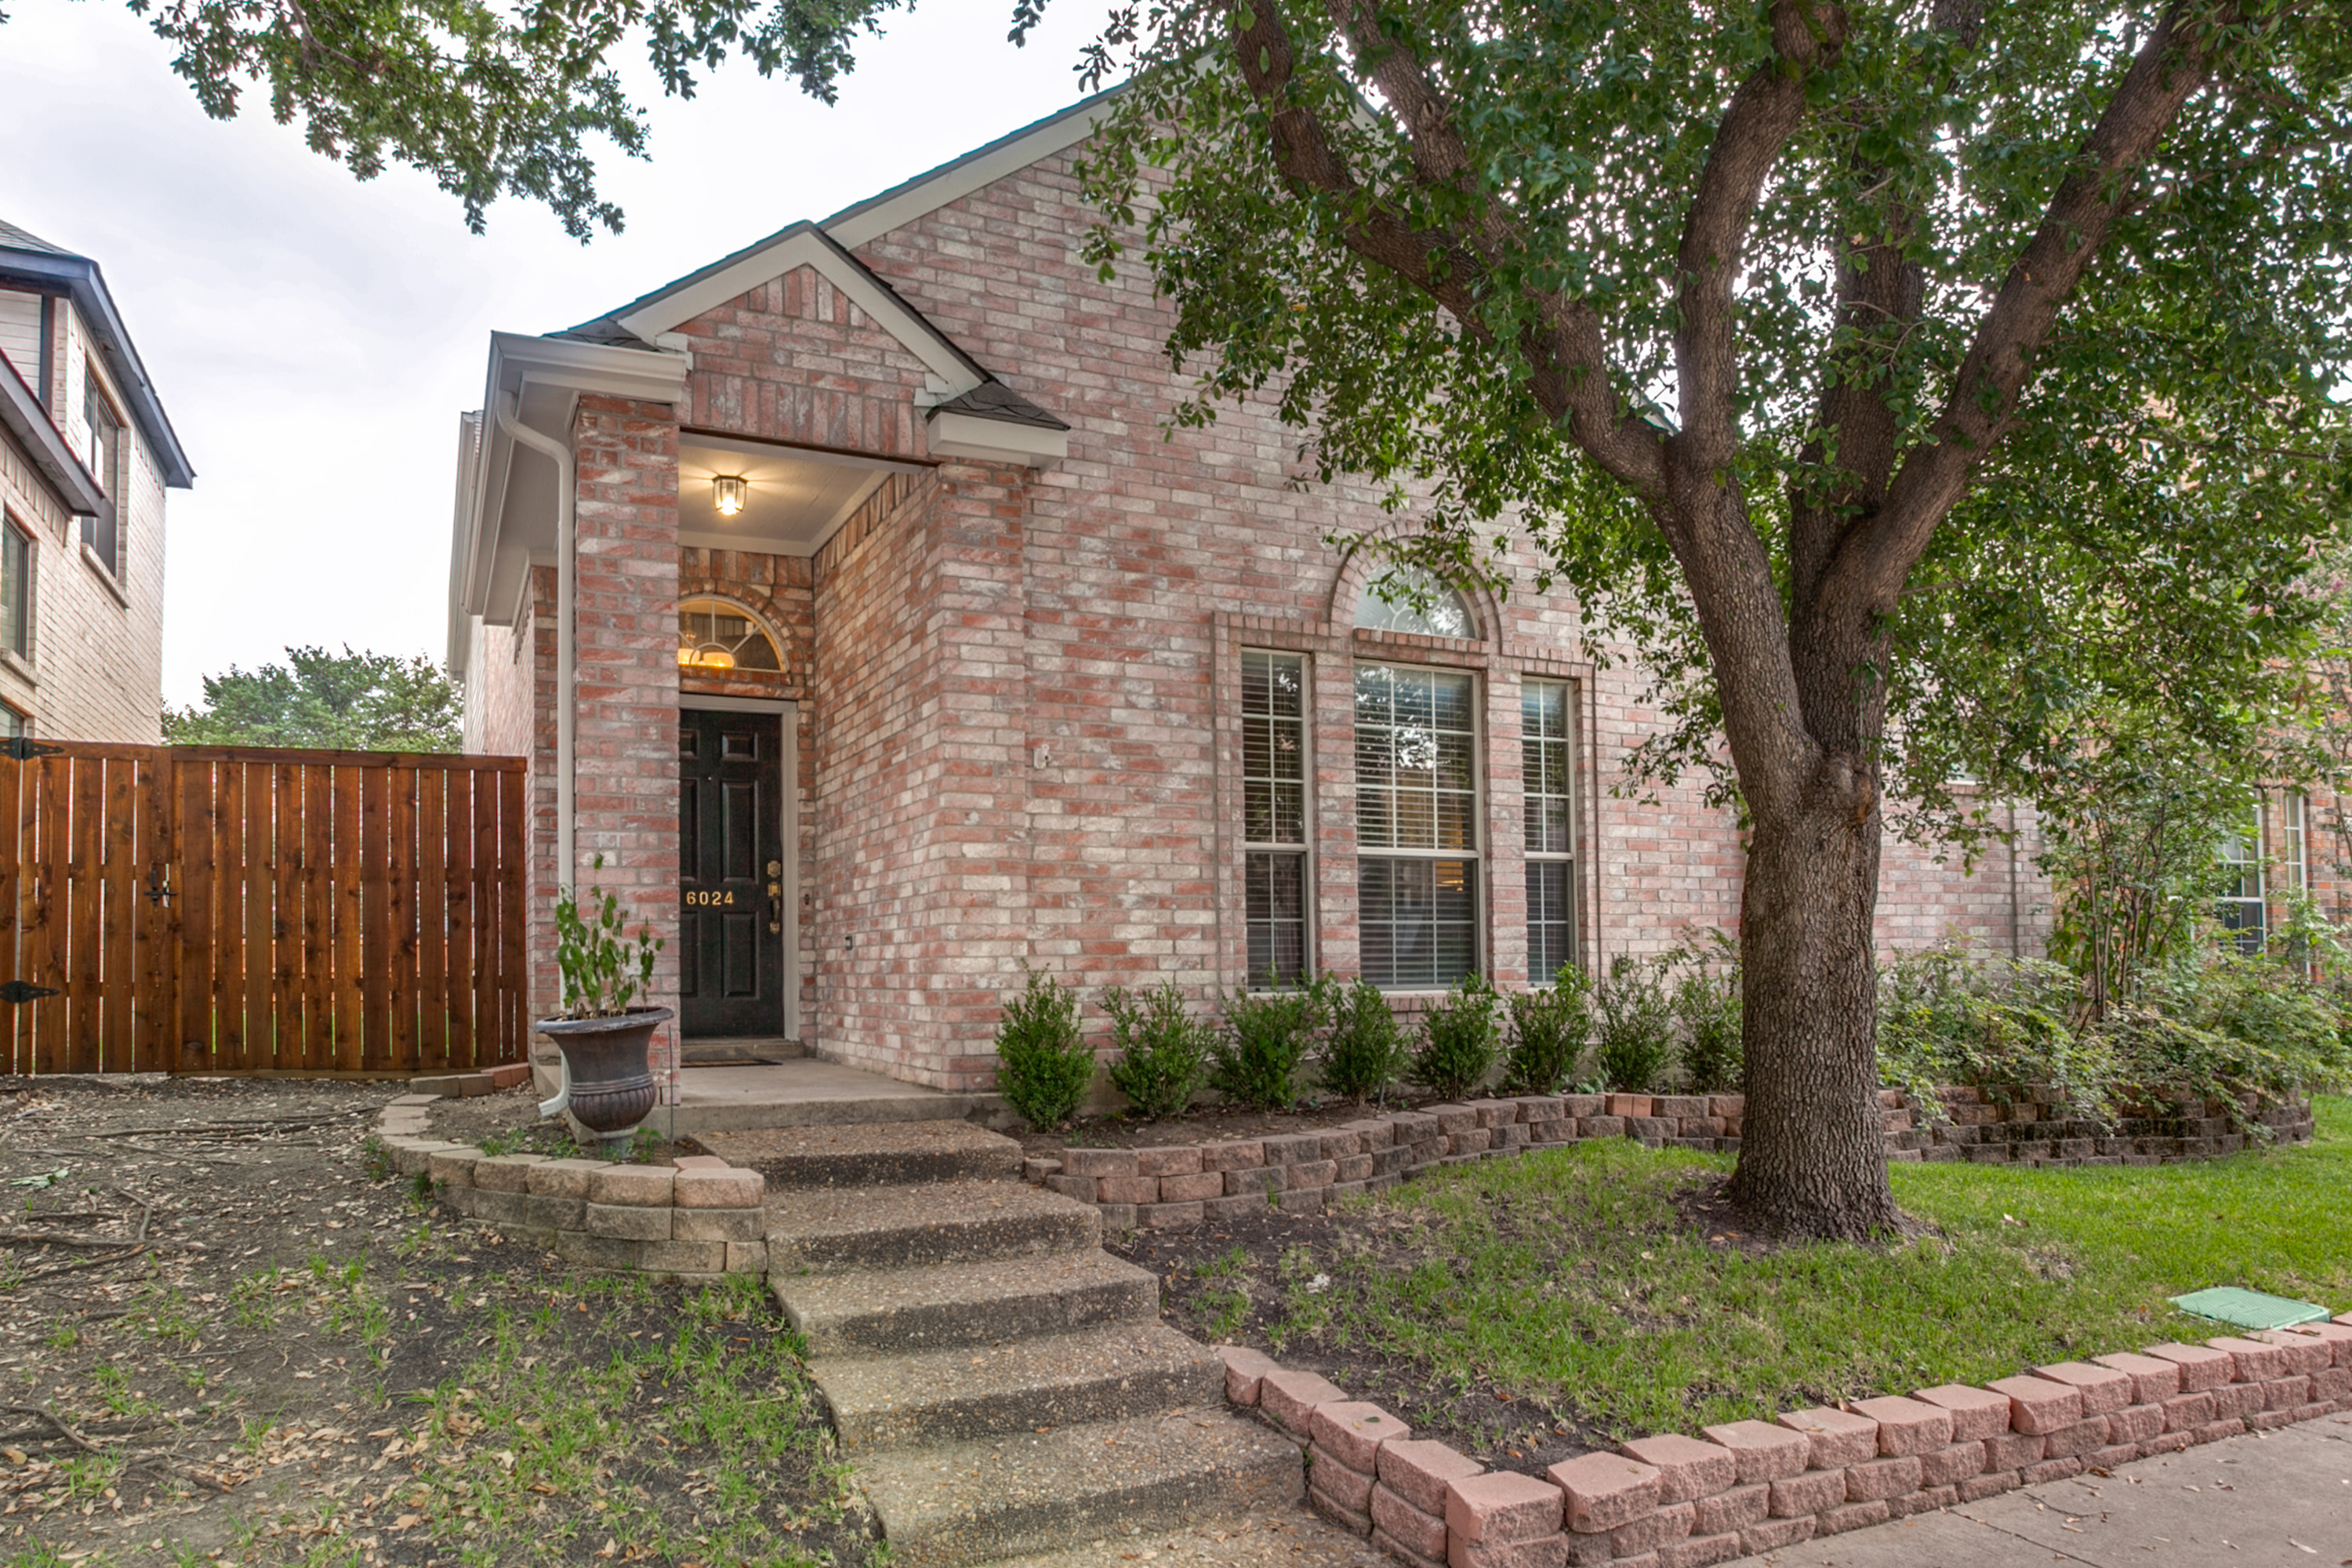 6024 Willow Wood Lane, Dallas, 75252 Texas